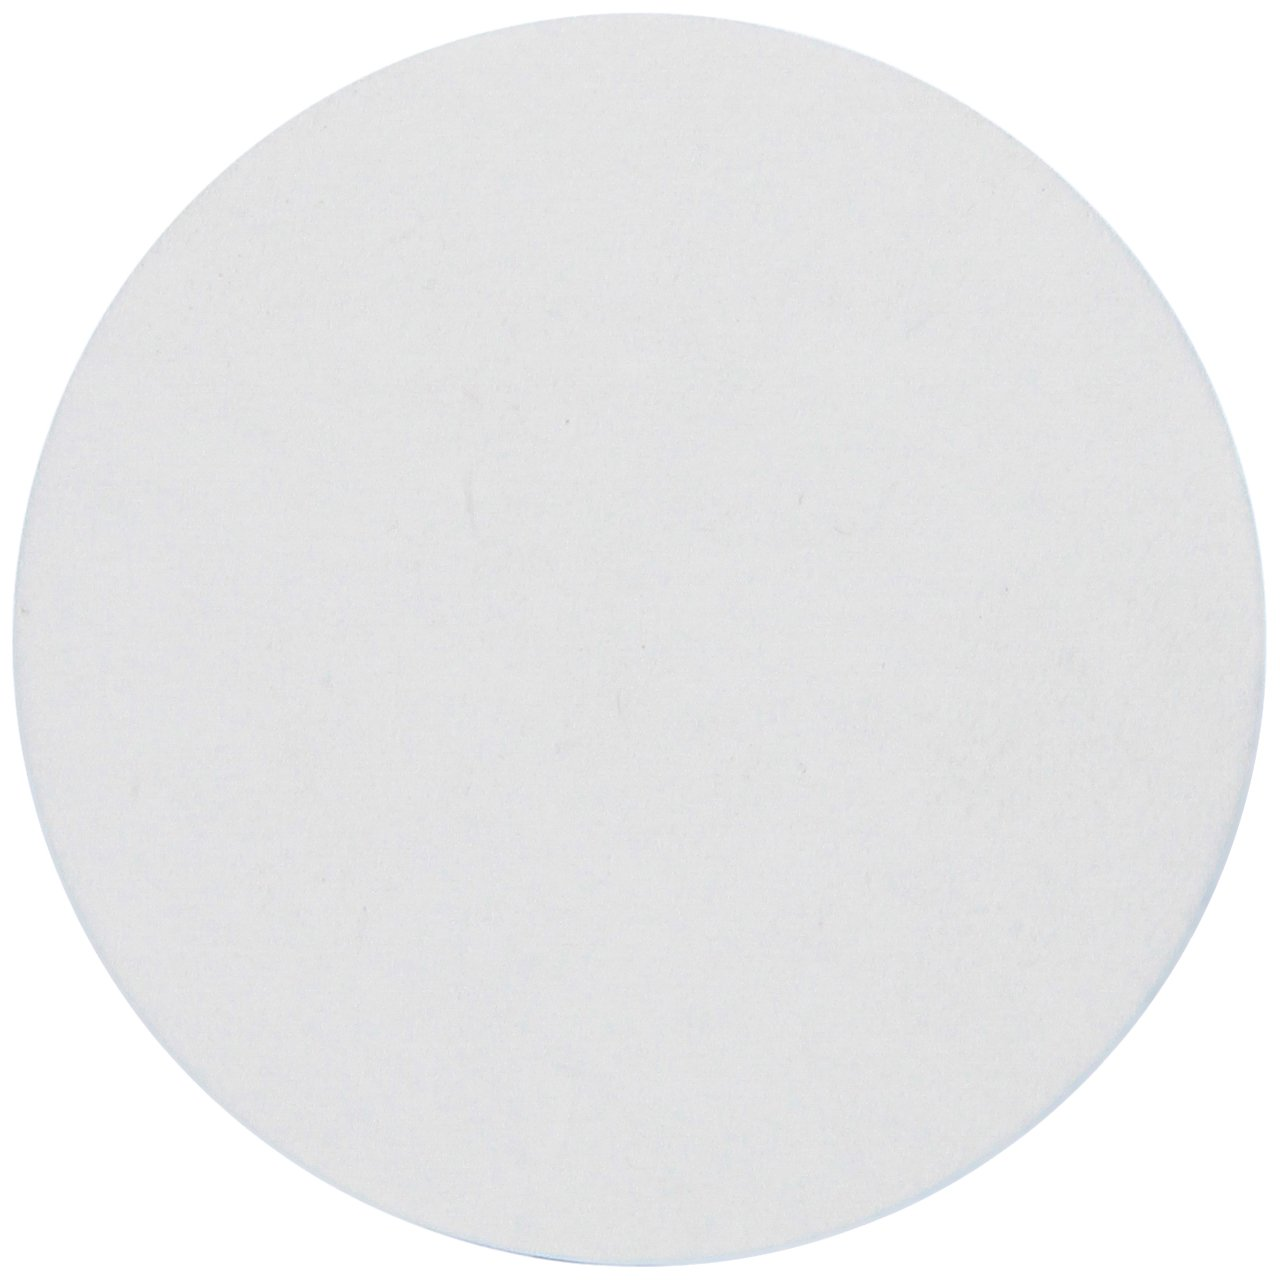 Whatman 4712K15PK 1003055 Grade 3 Qualitative Filter Paper, 55 mm Thick and Max Volume 230 ml/m (Pack of 100)